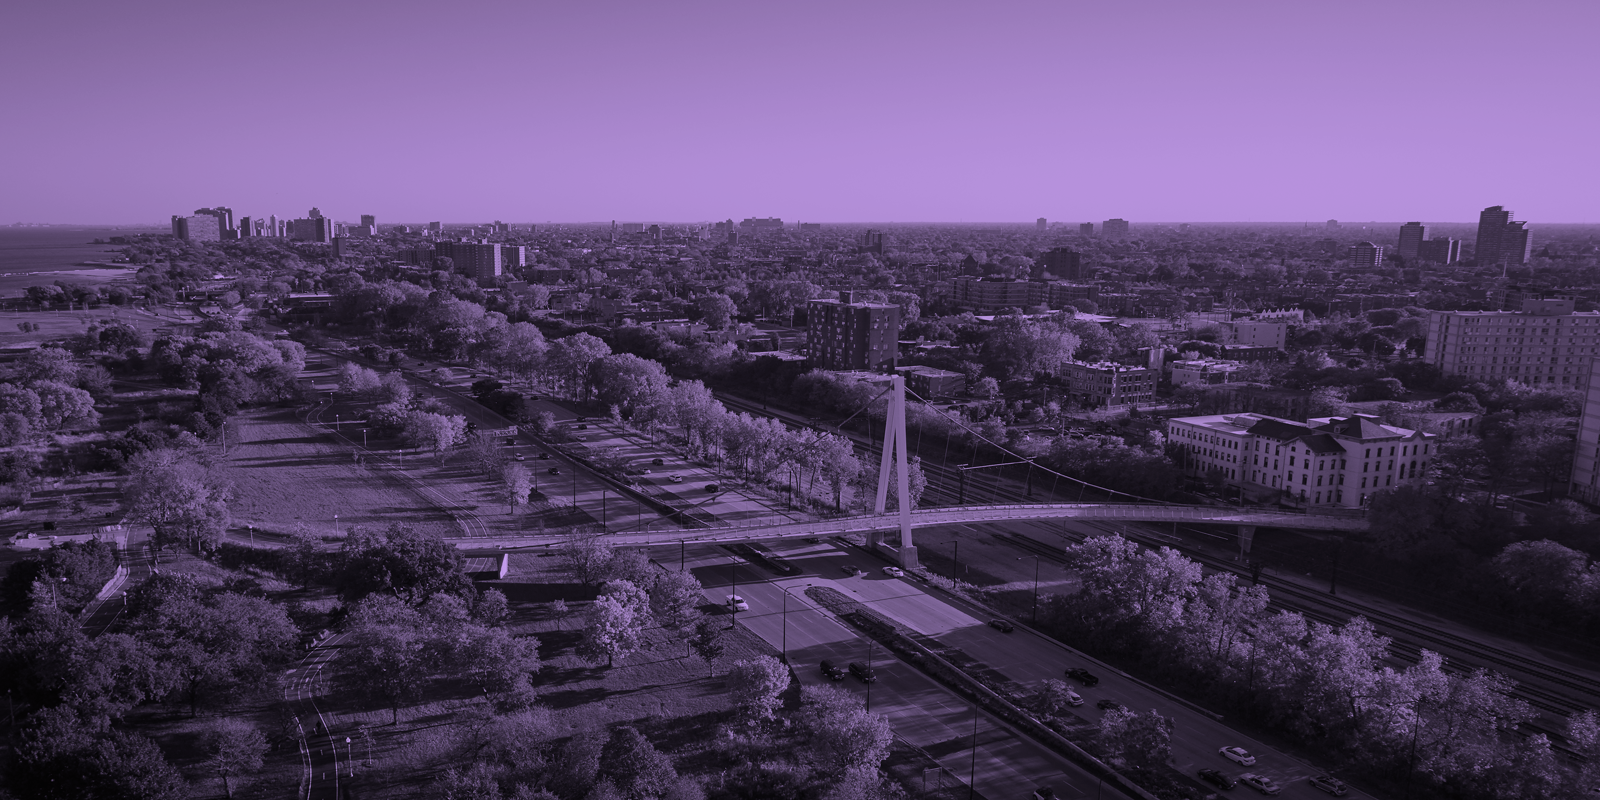 Image of an urban area, with a purple overlay